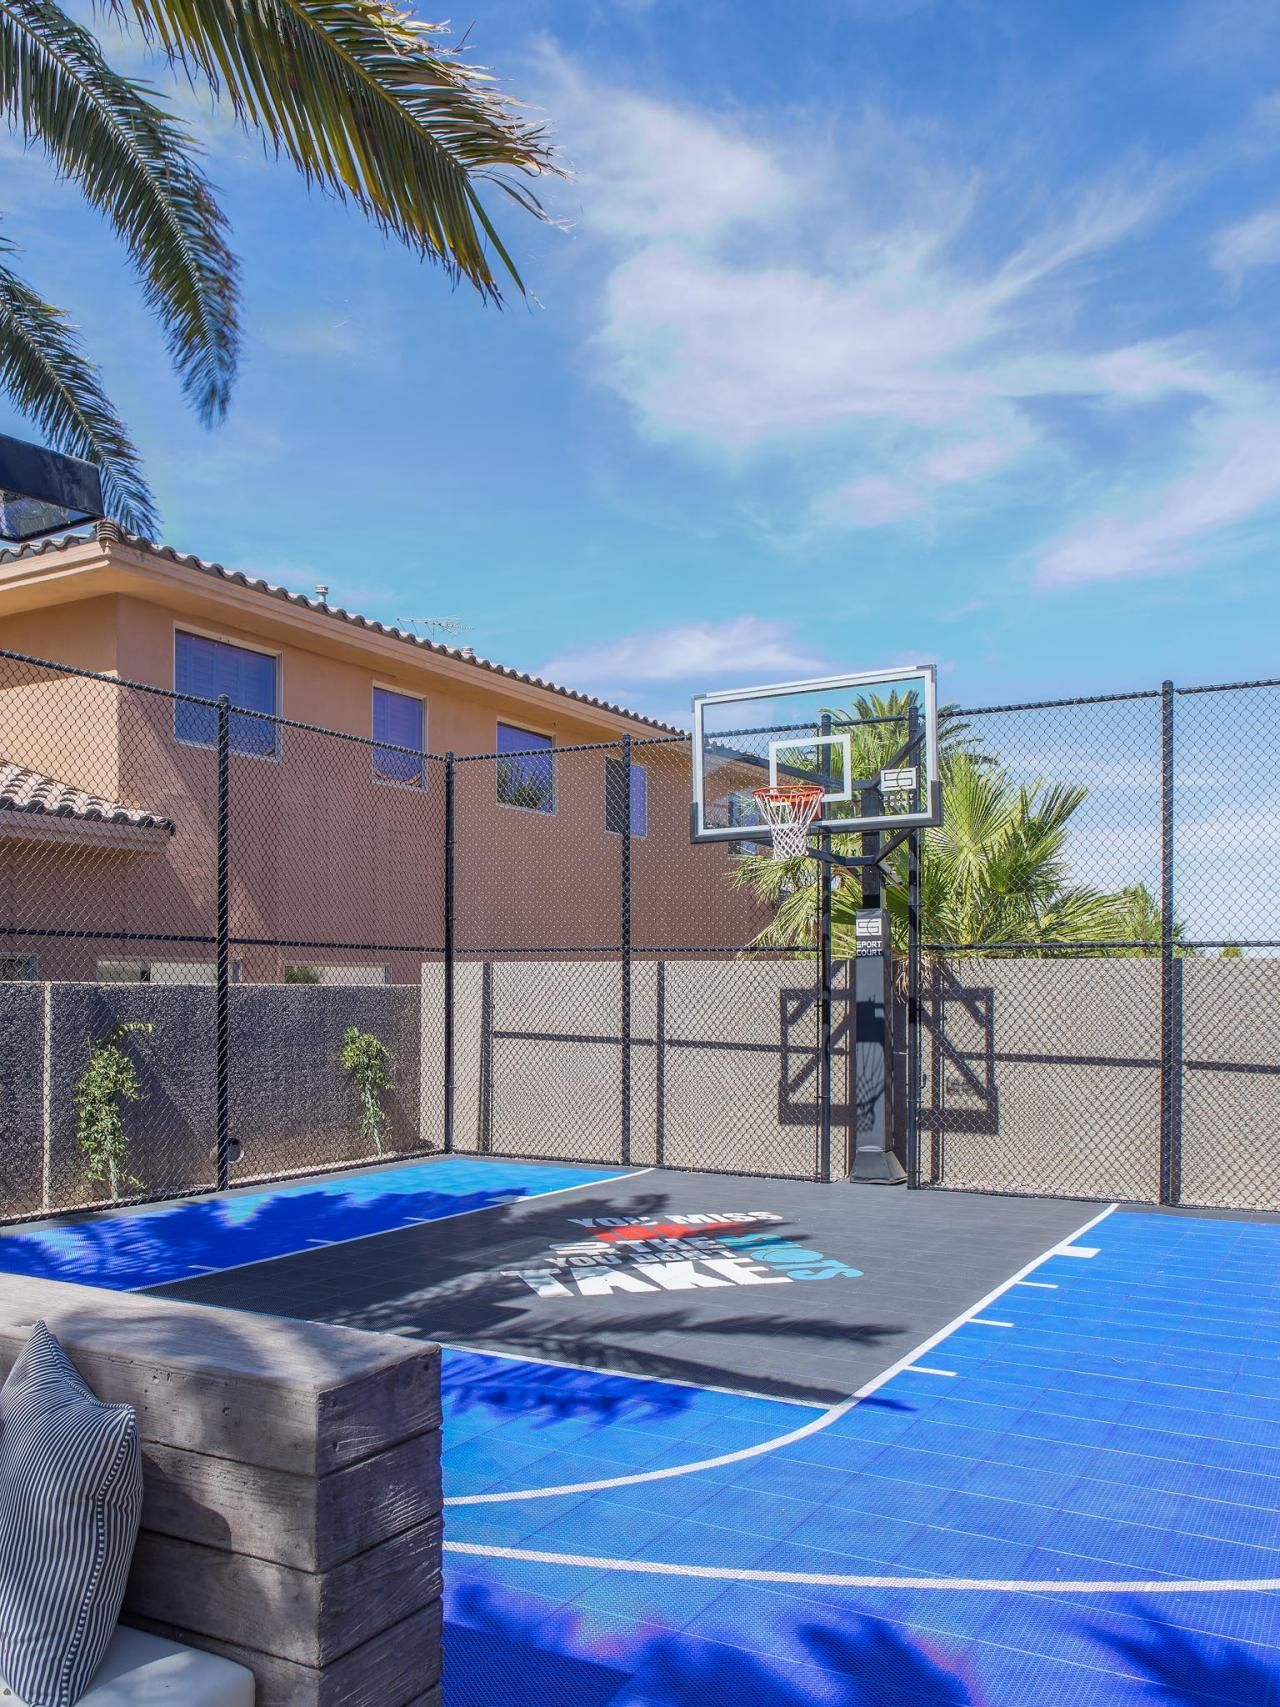 Drew and Jonathan Scott installed a basketball court in the ...